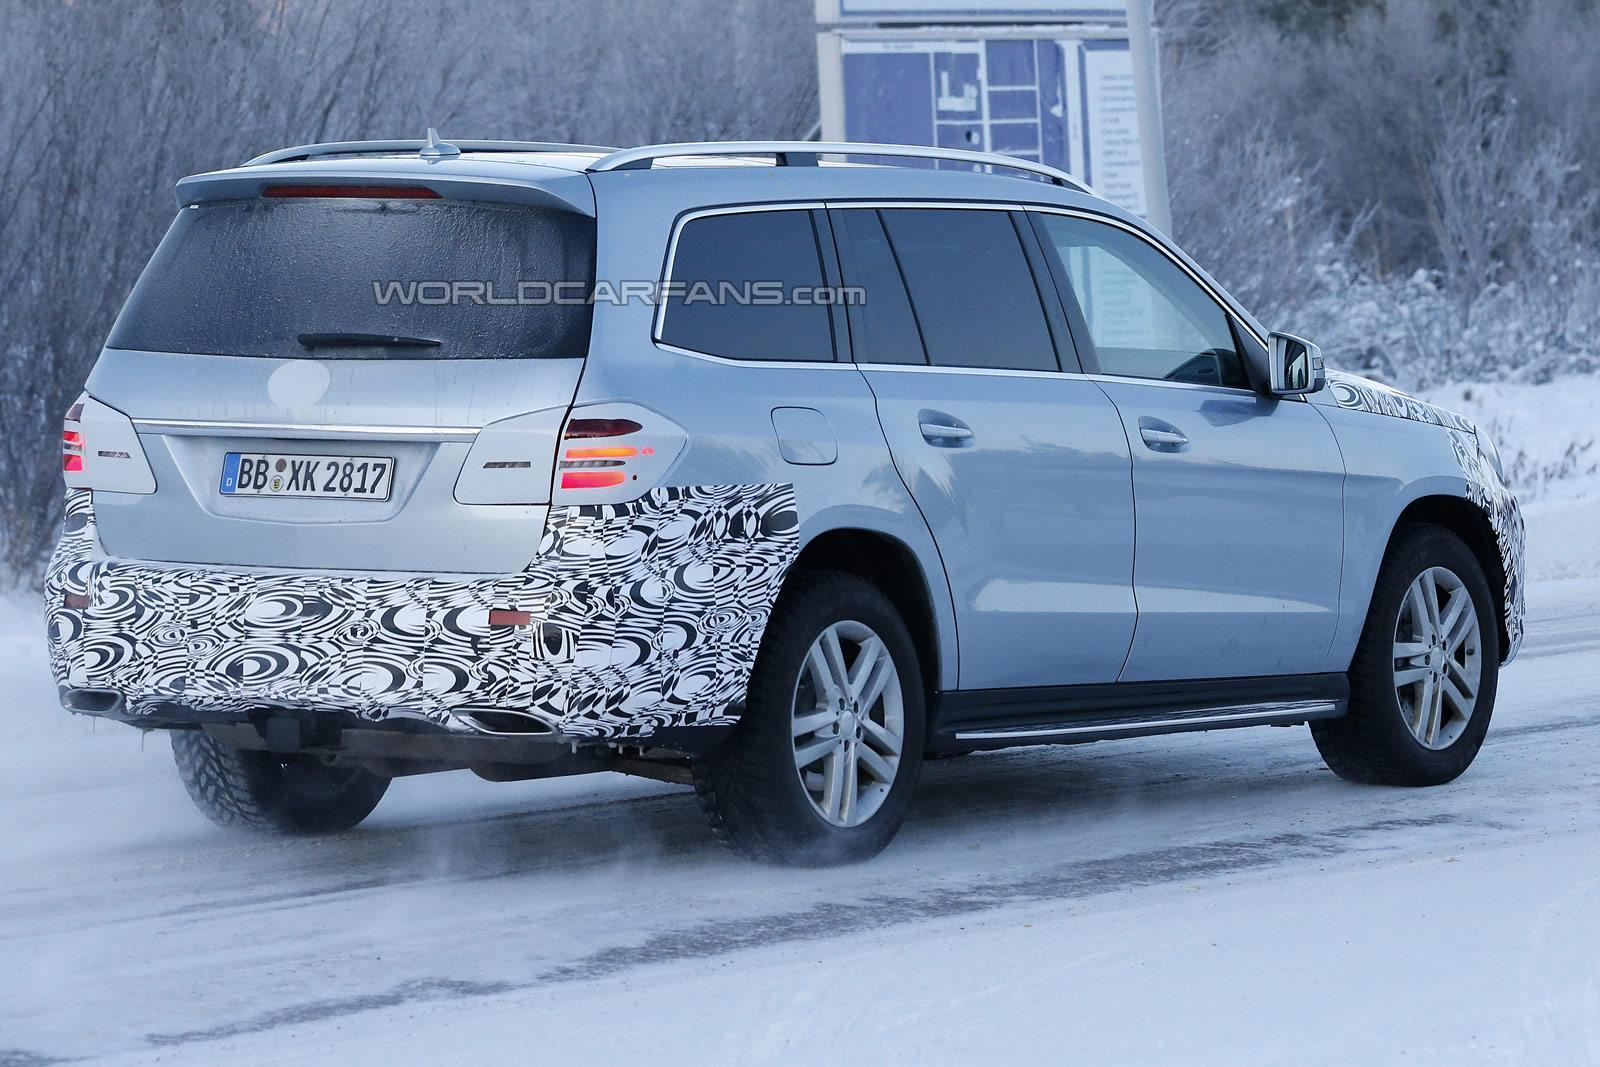 Spyshots Mercedes Benz Gls Suv Previously Gl Facelift In The Snow